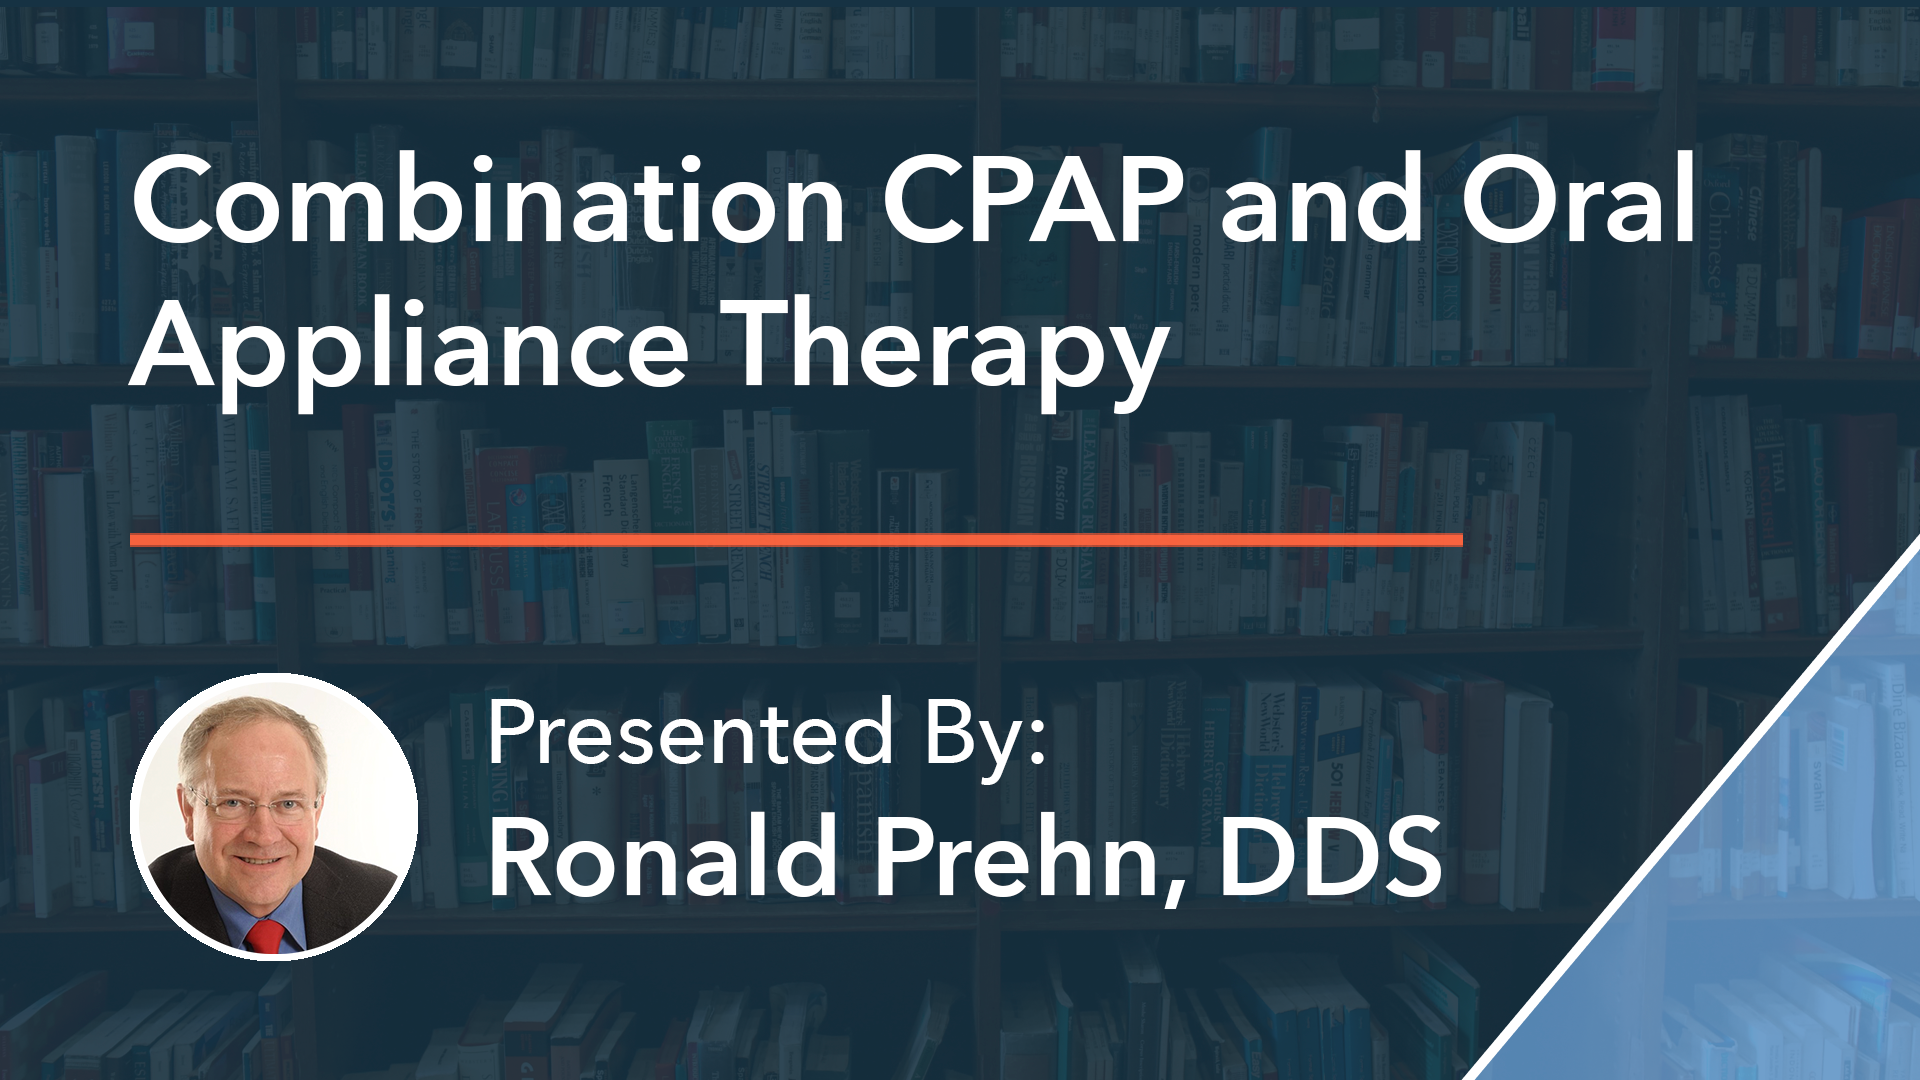 Combination CPAP and Oral Appliance Therapy Dr Ronald Prehn